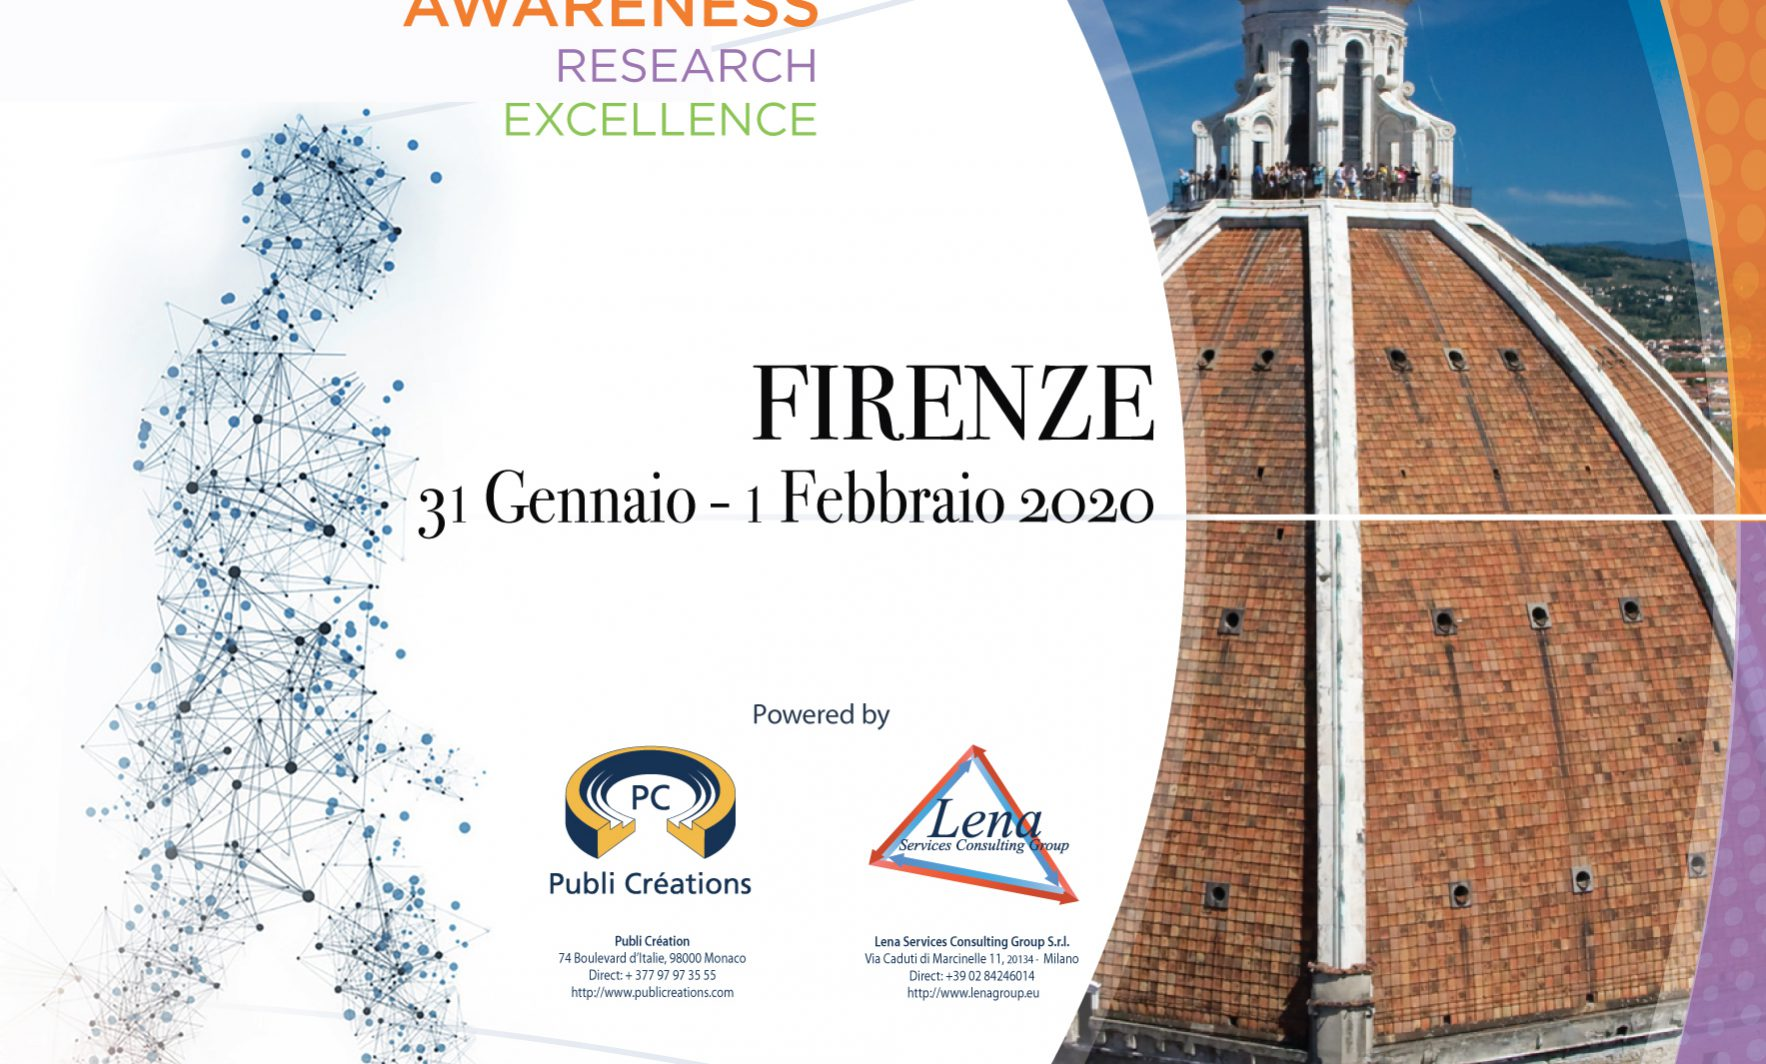 NTM DARE Firenze